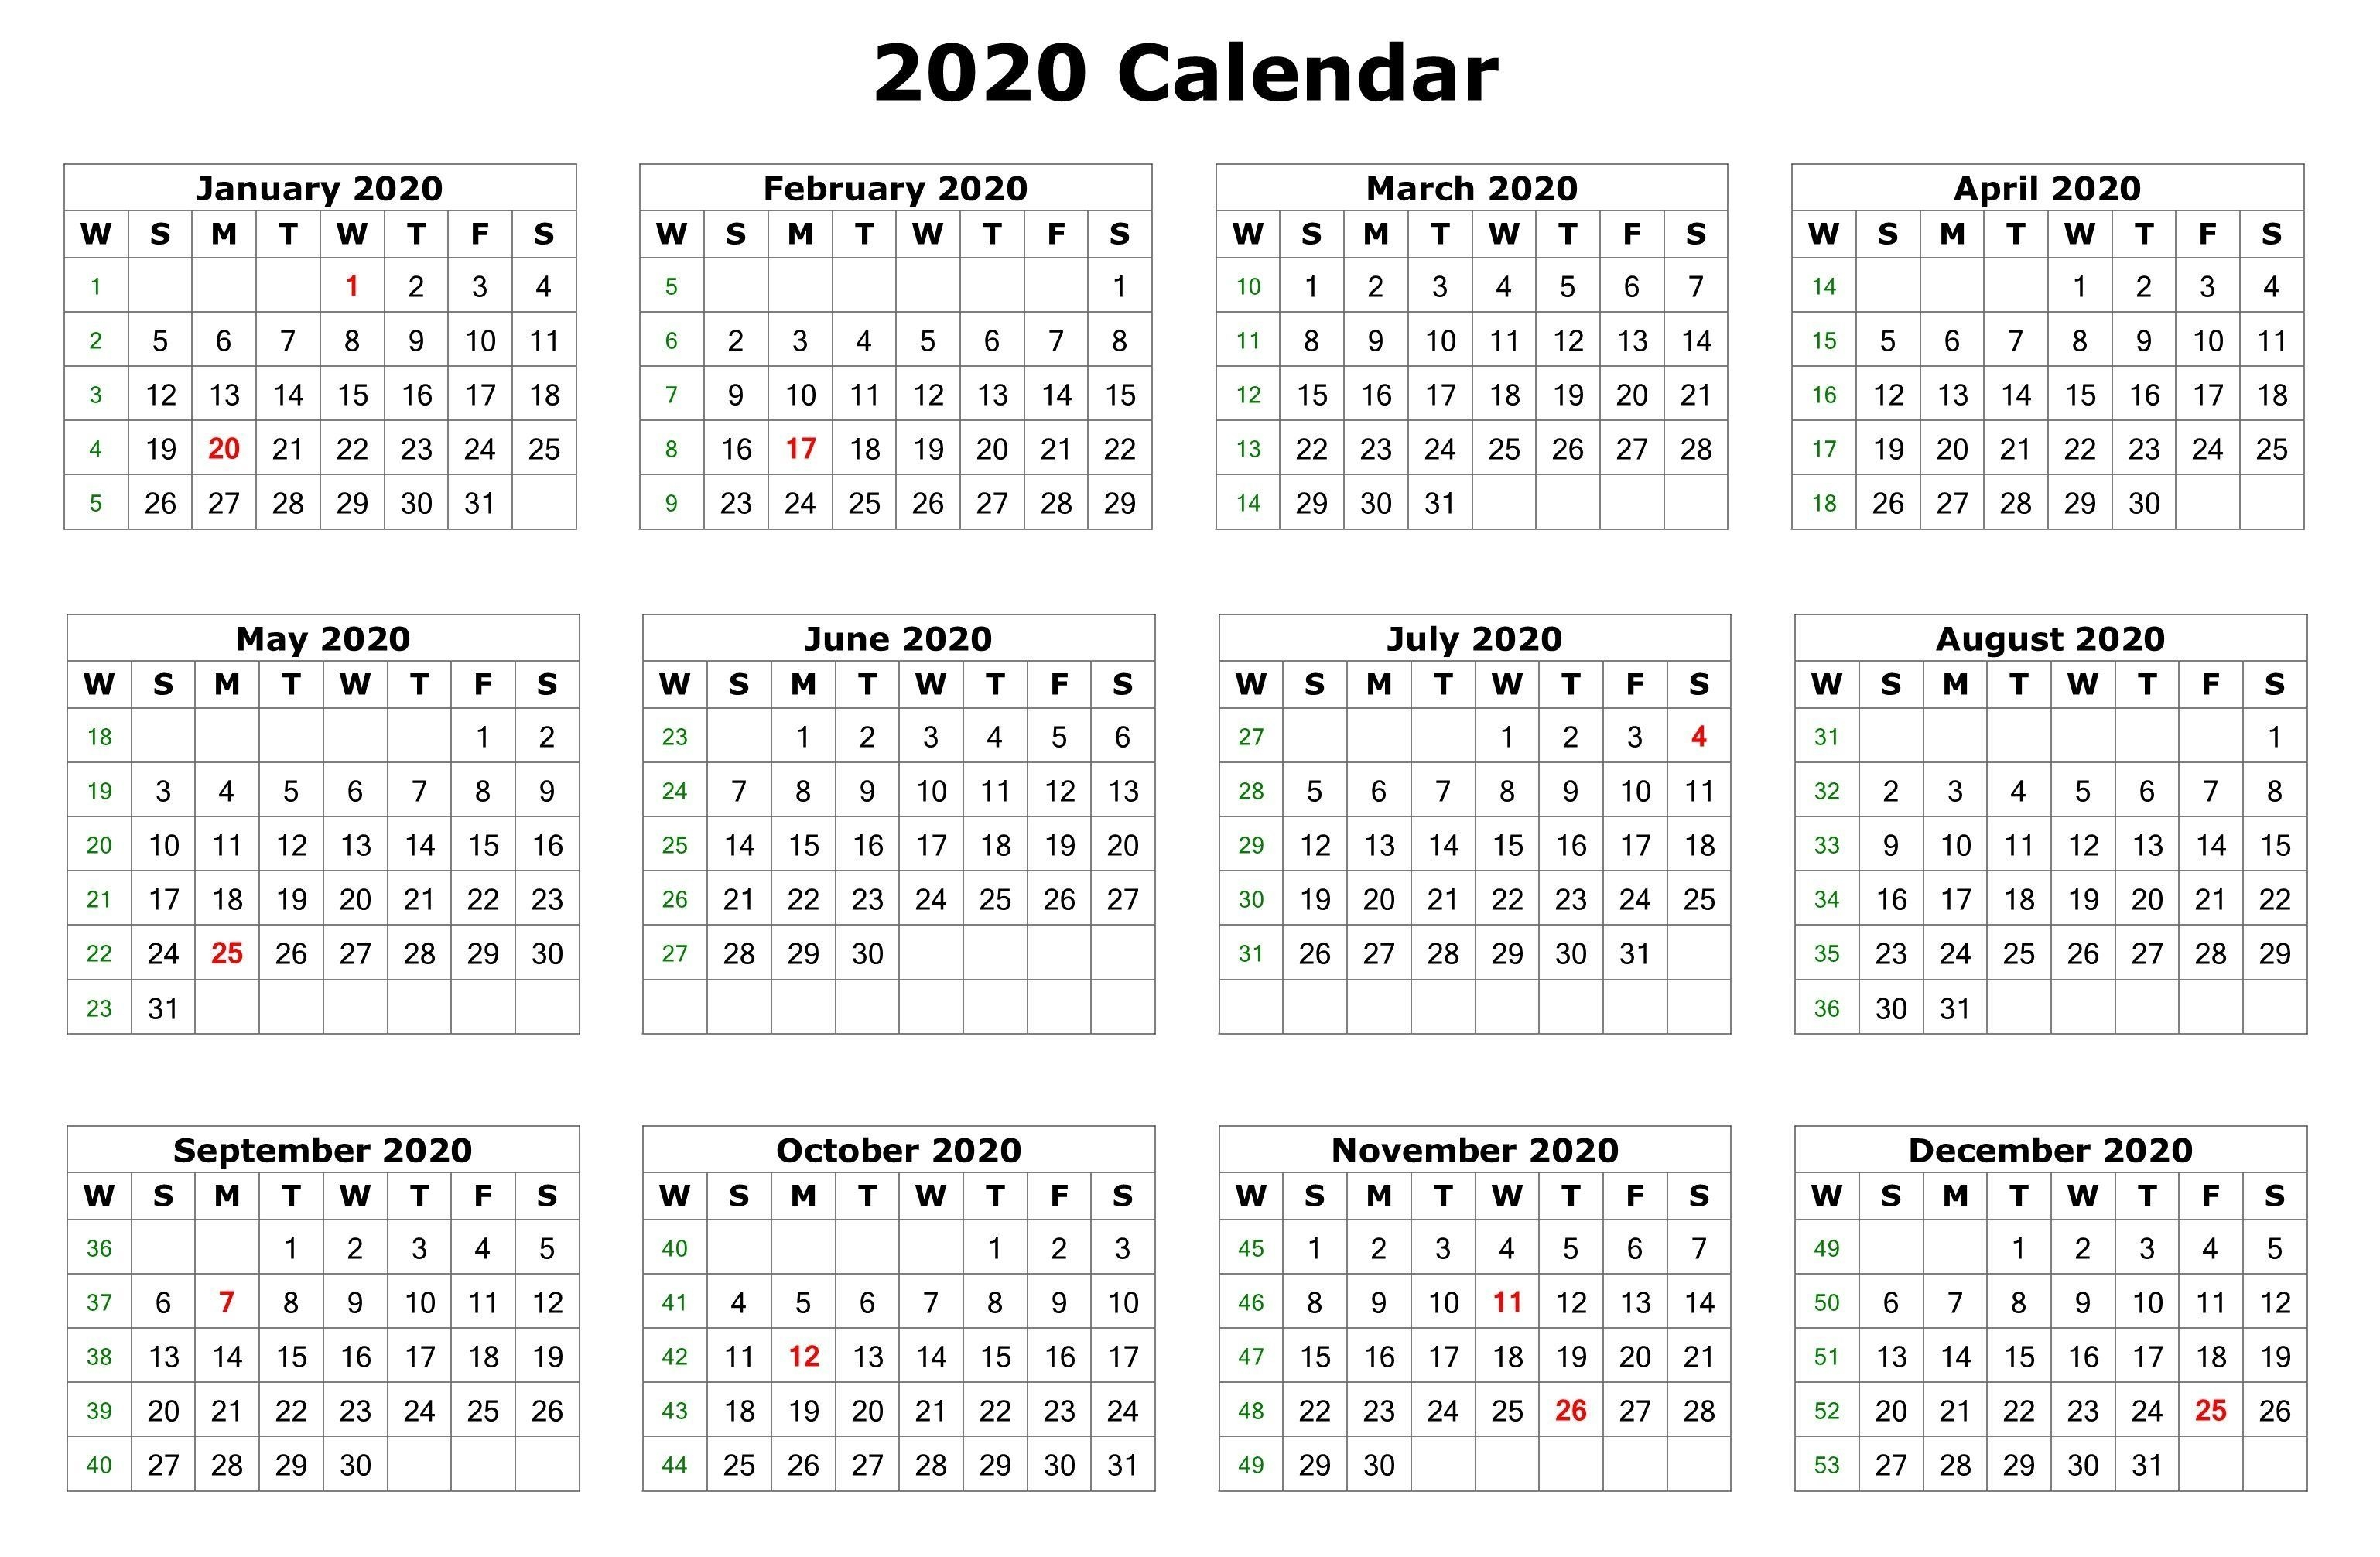 2020 One Page Calendar Printable (With Images) | Calendar